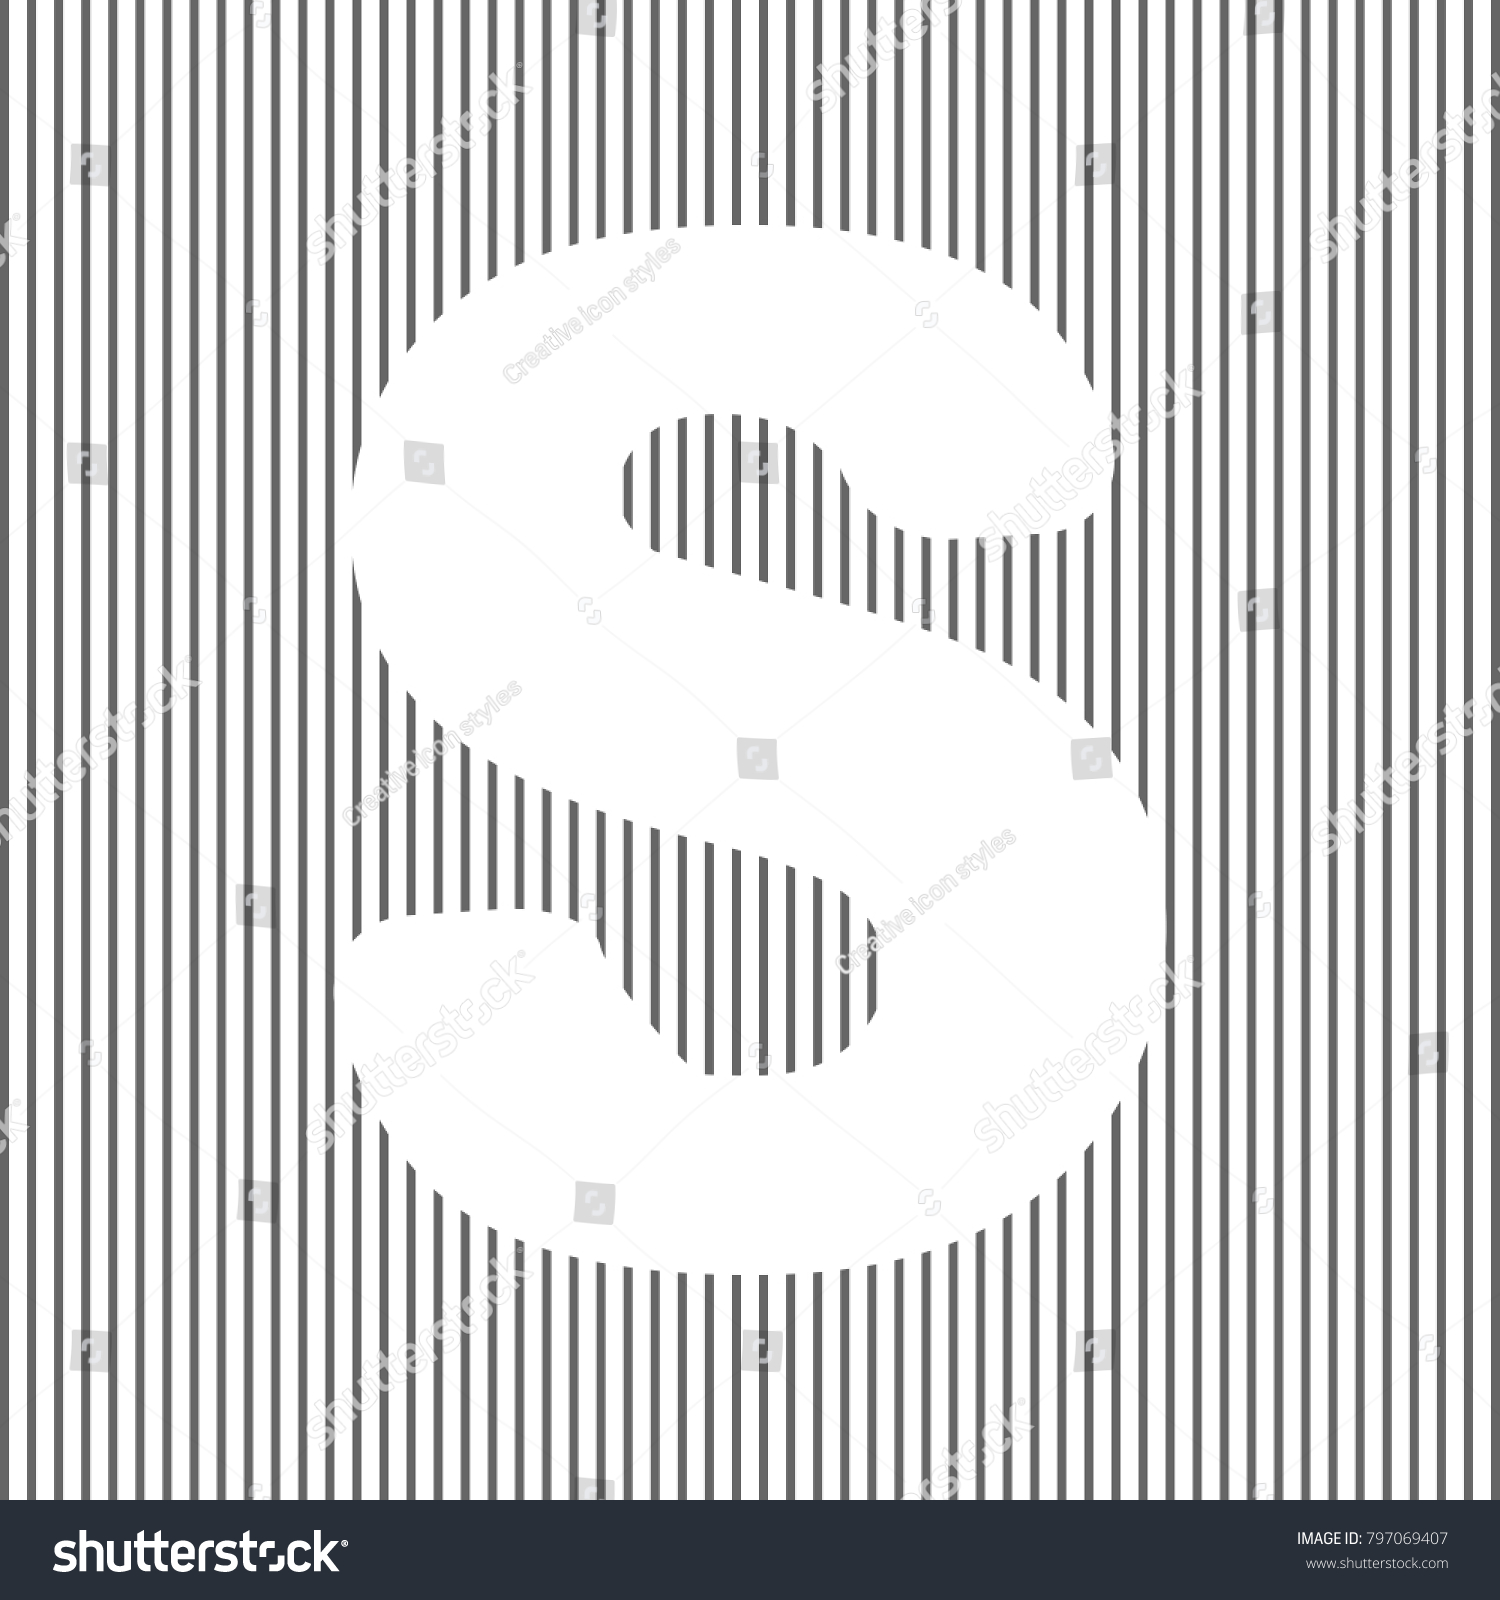 Letter S Sign Design Template Element Stock Vector (Royalty Free ...